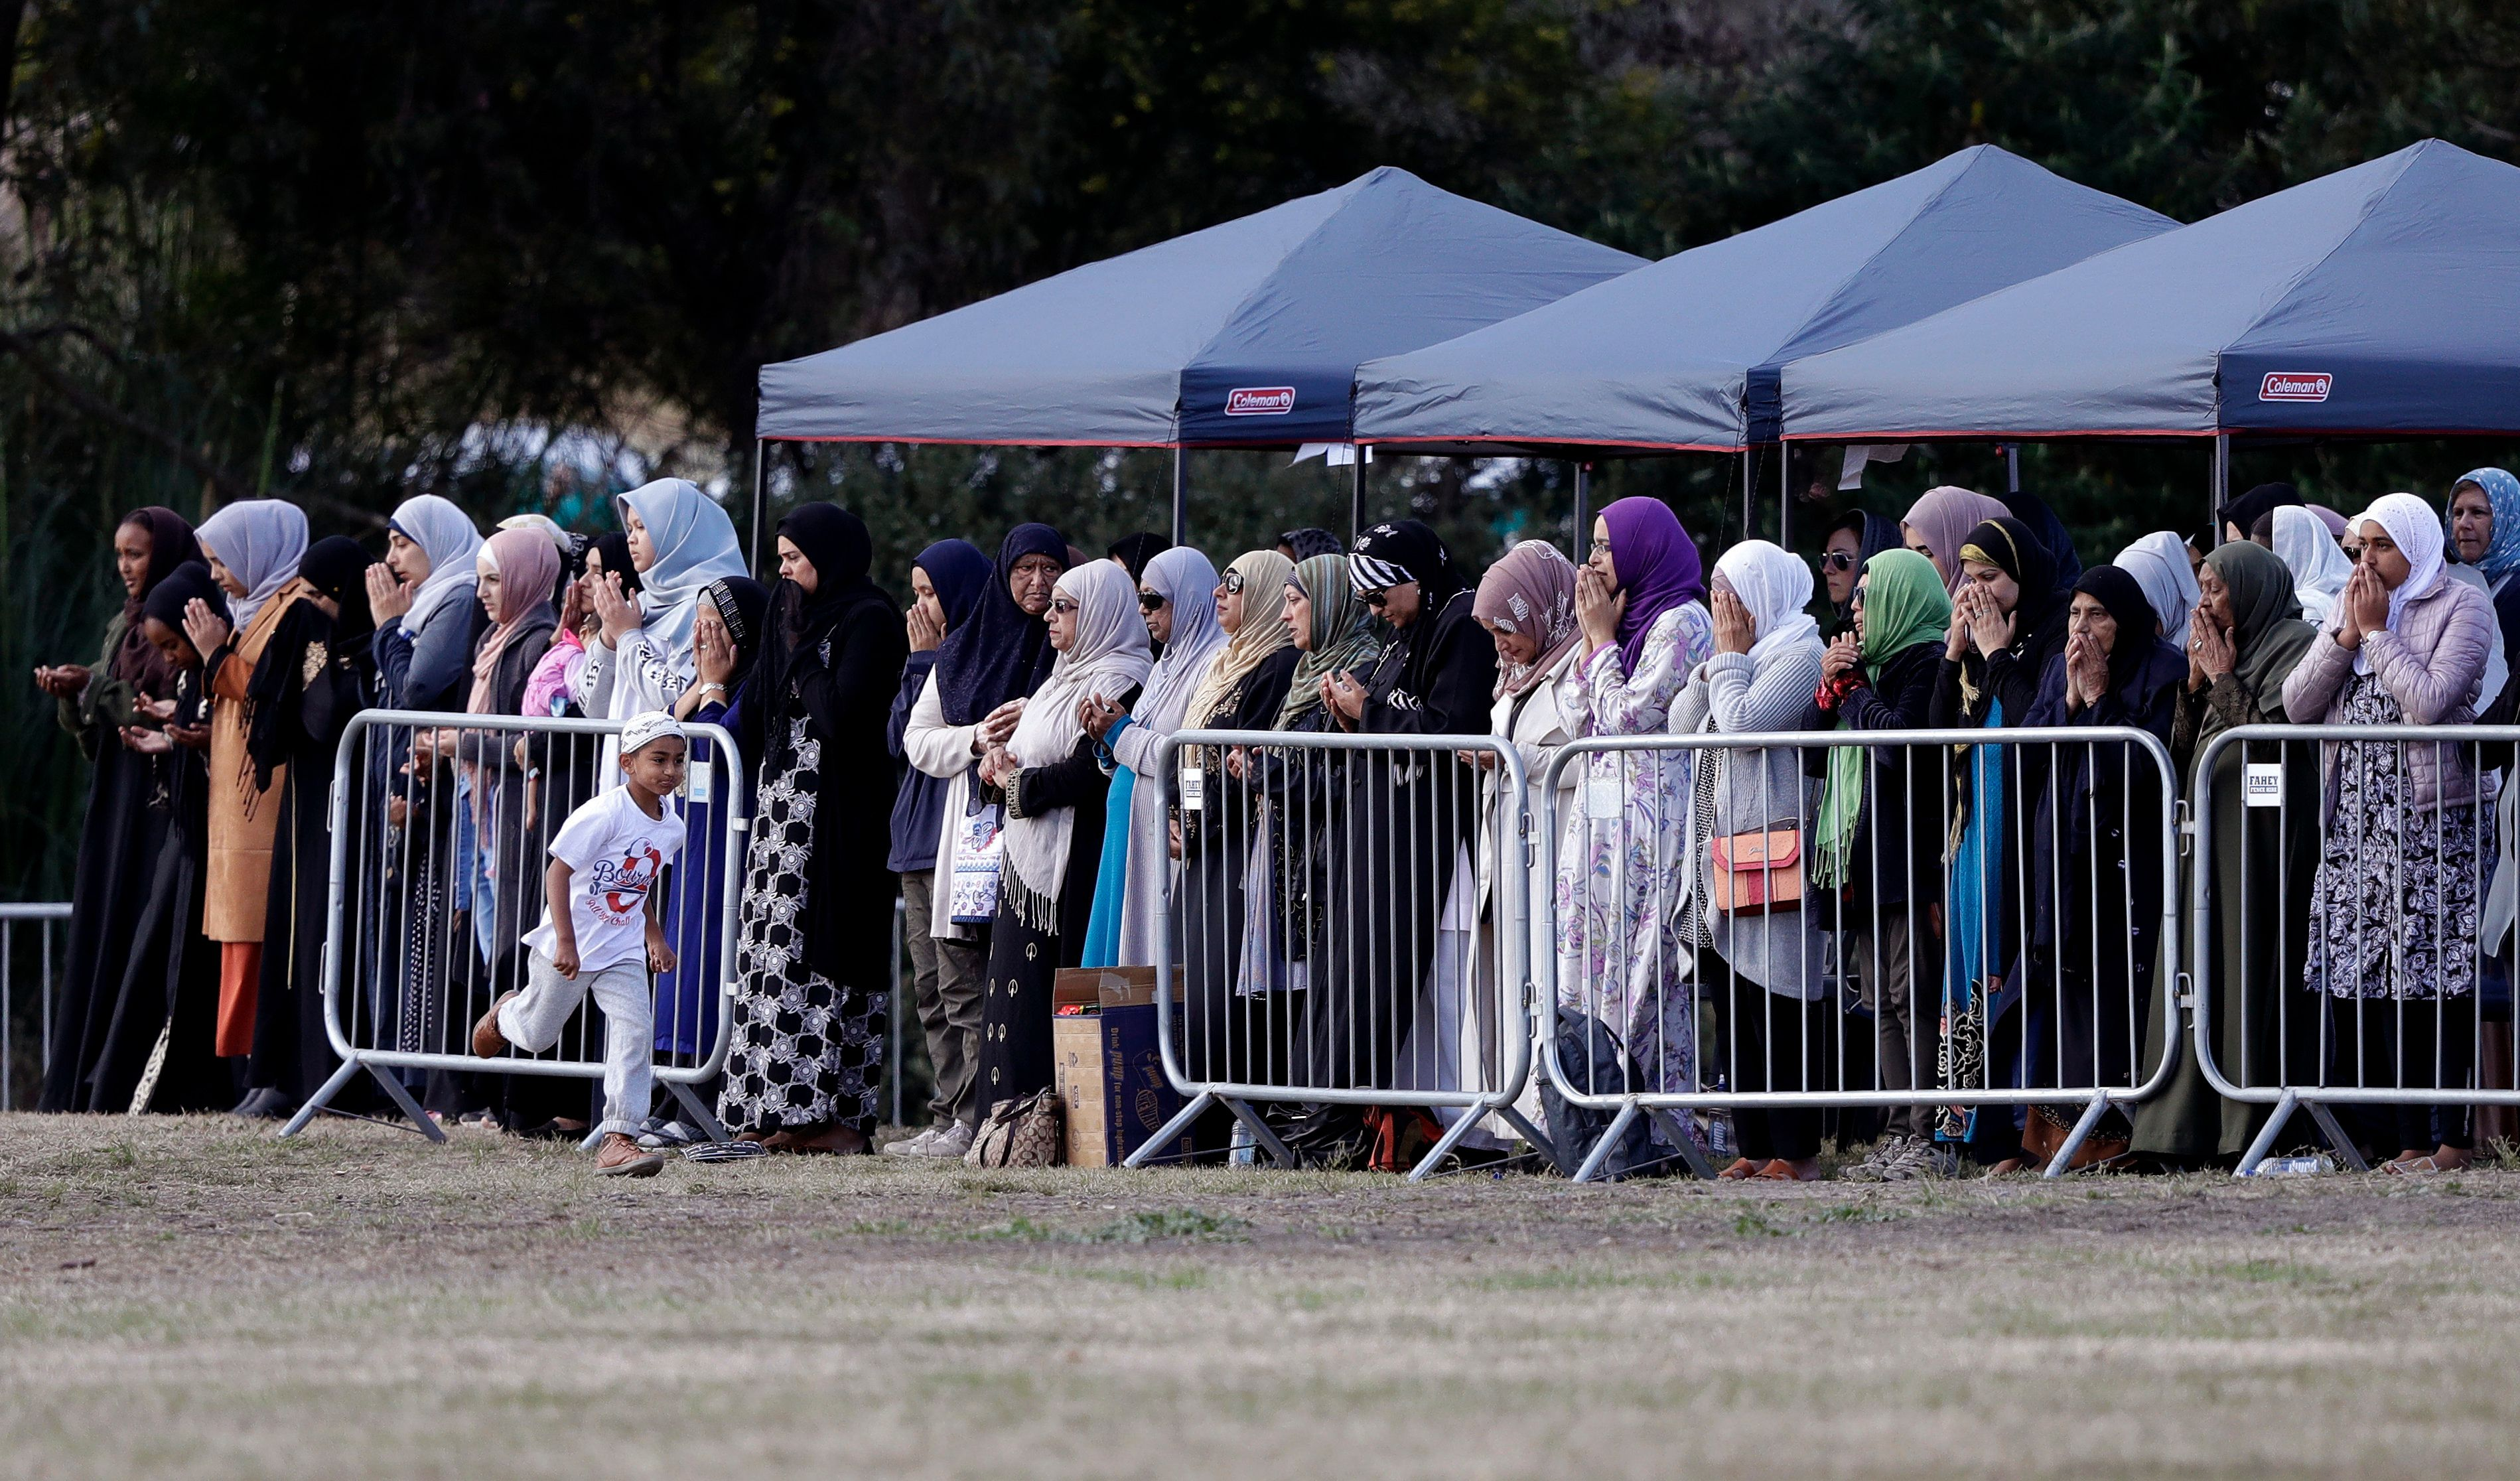 Women mourners pray during a funeral of a Friday March 15 mosque shooting victim at the Memorial Park